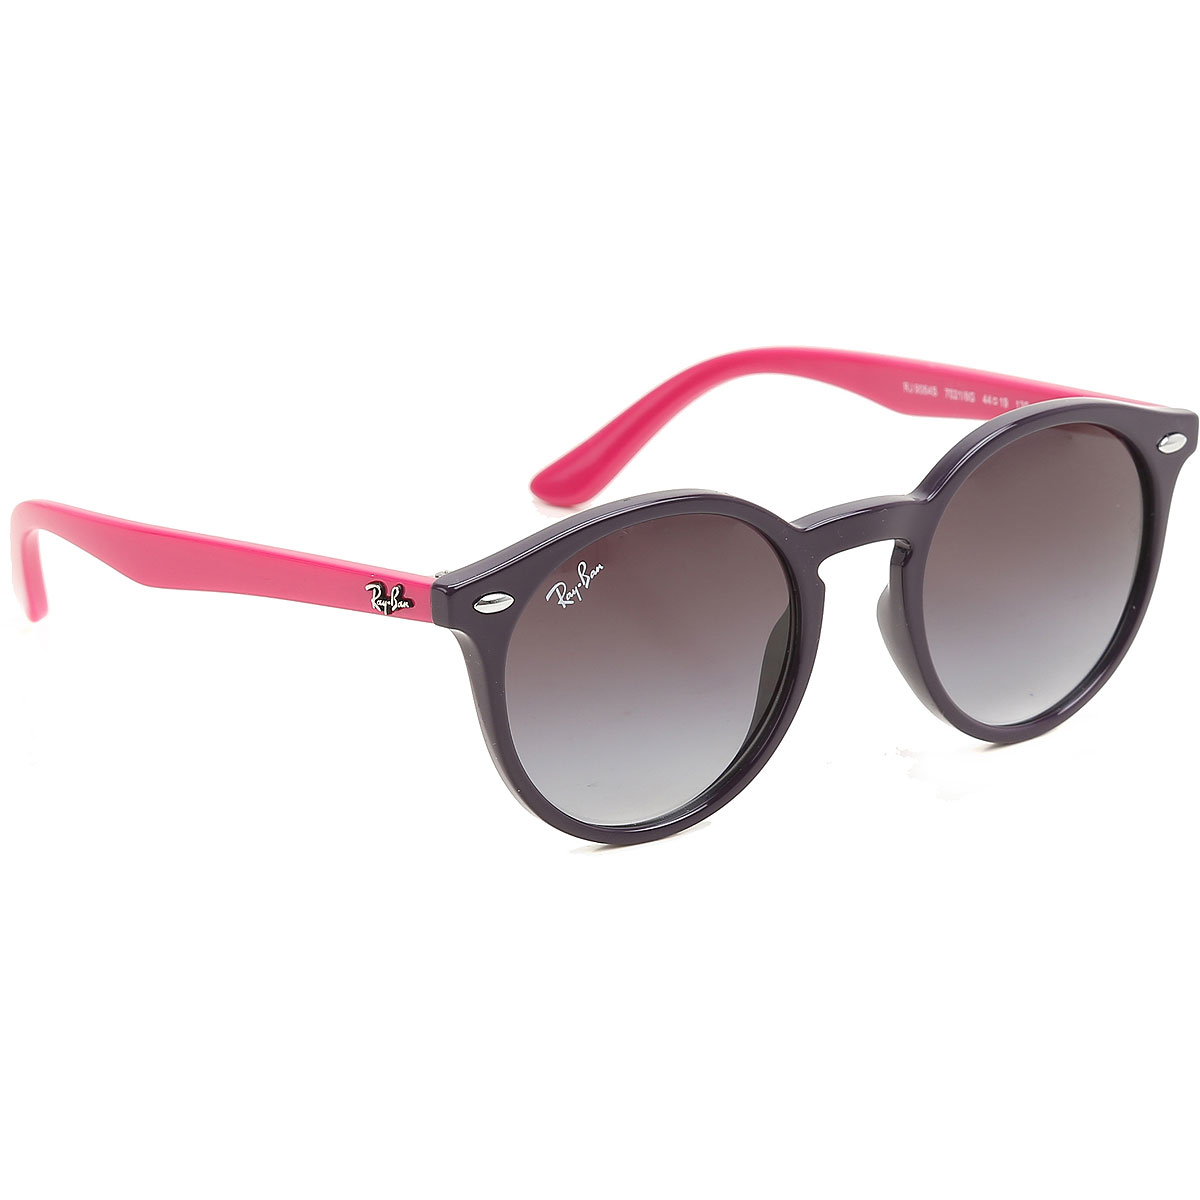 Image of Ray Ban Junior Kids Sunglasses for Girls On Sale, Eggplant Violet, 2017